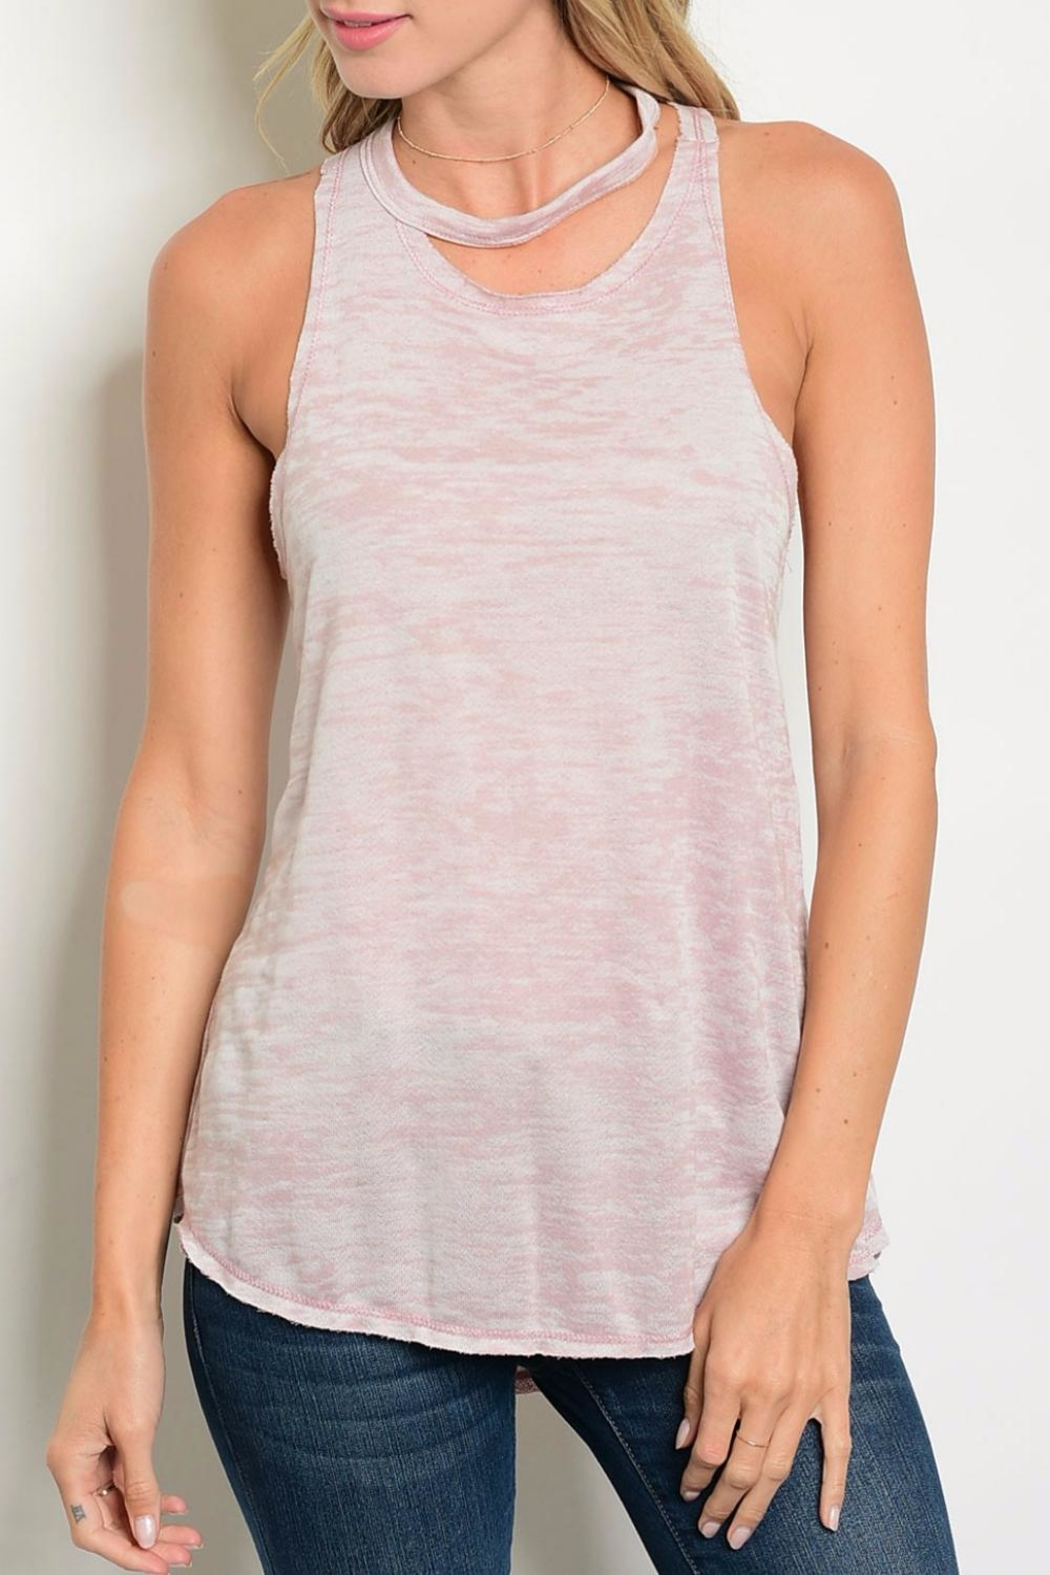 Sweet Claire Pink Wash Tank Top - Main Image